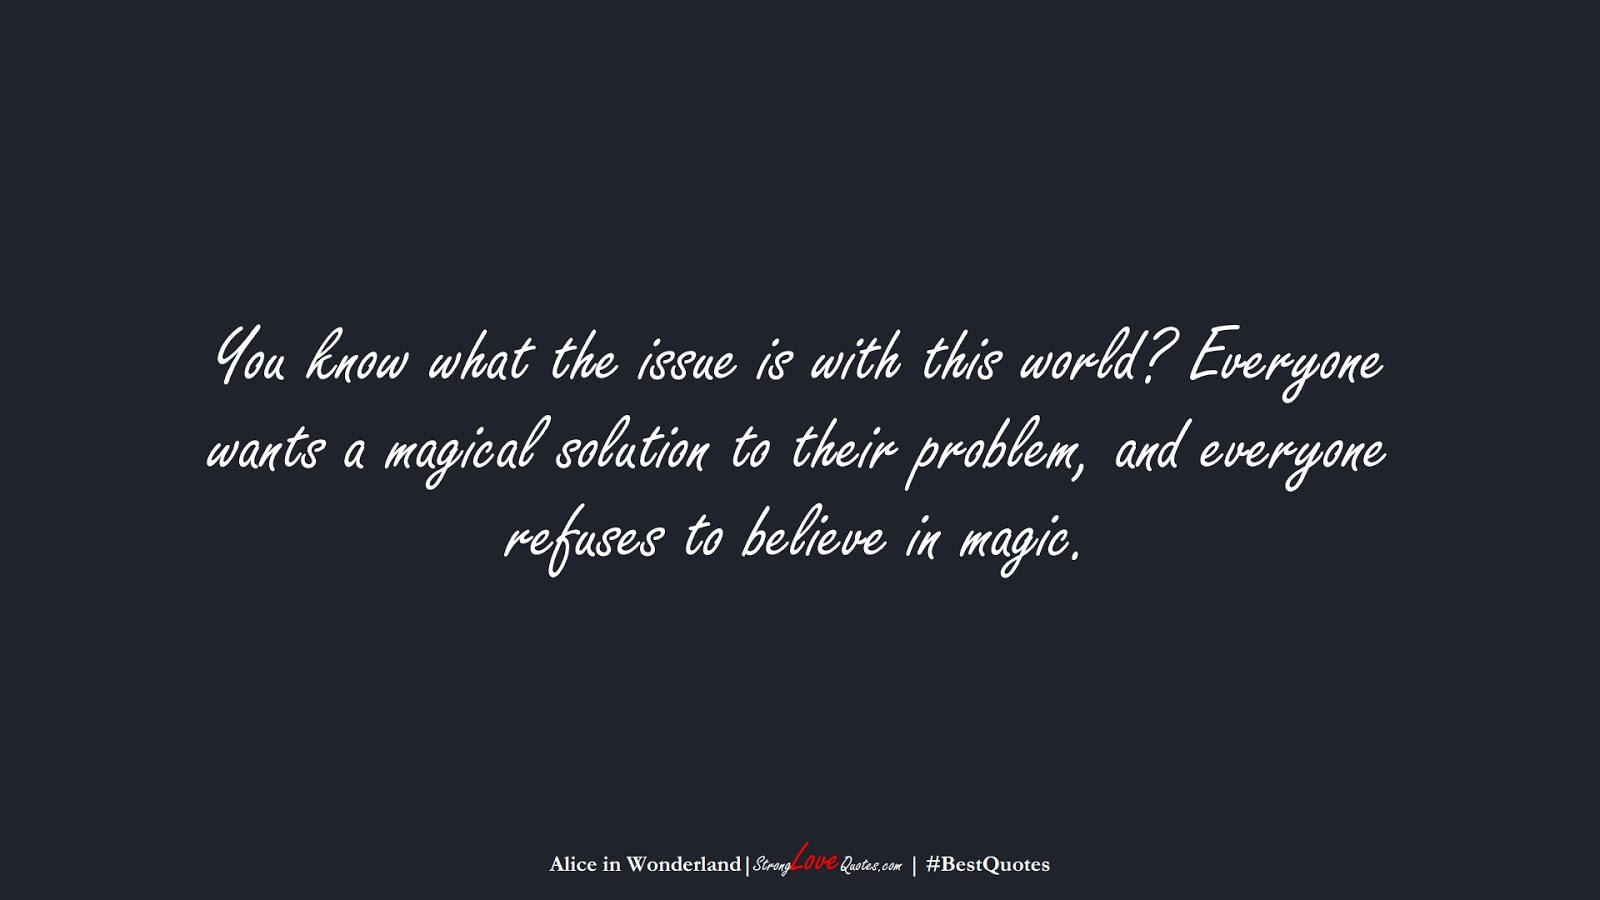 You know what the issue is with this world? Everyone wants a magical solution to their problem, and everyone refuses to believe in magic. (Alice in Wonderland);  #BestQuotes